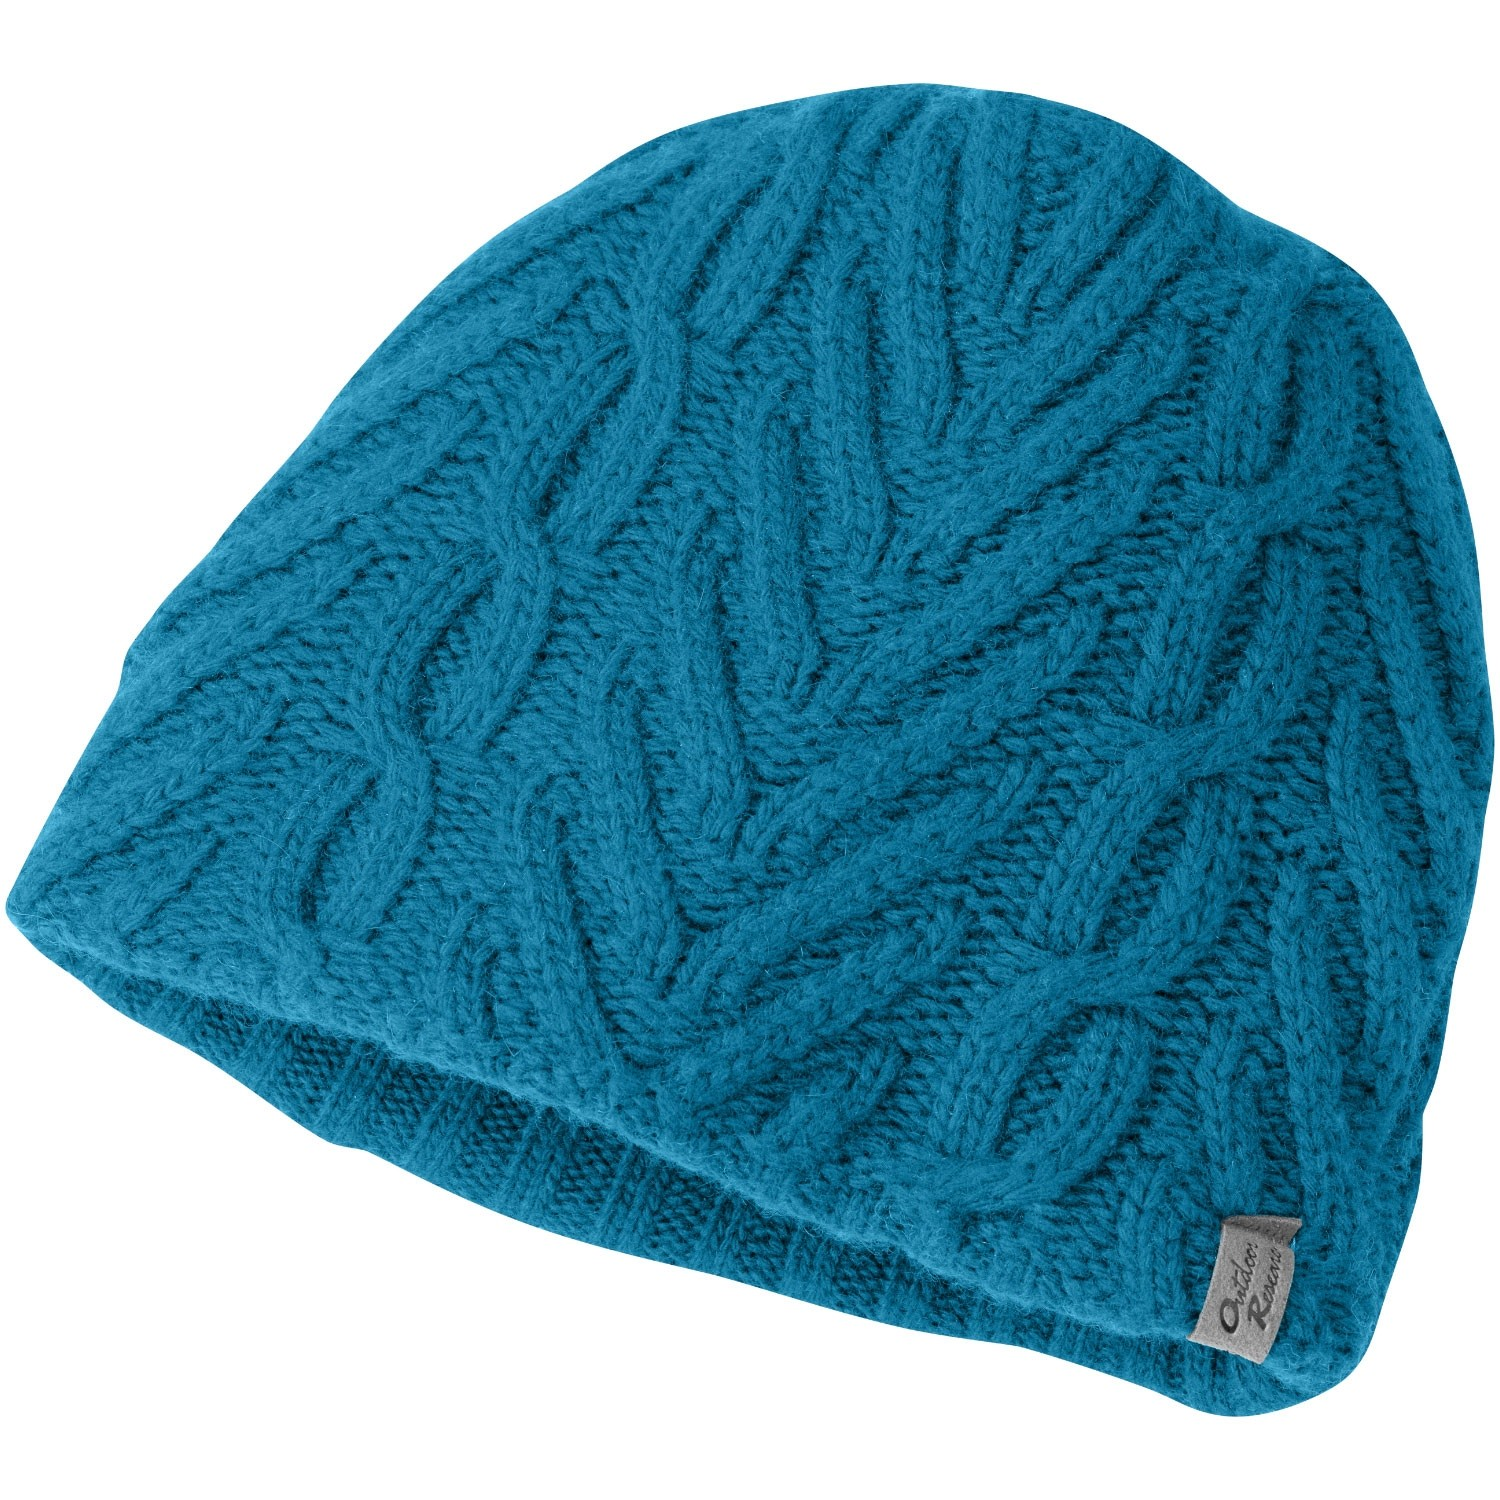 Outdoor Research Jules Beanie - Oasis